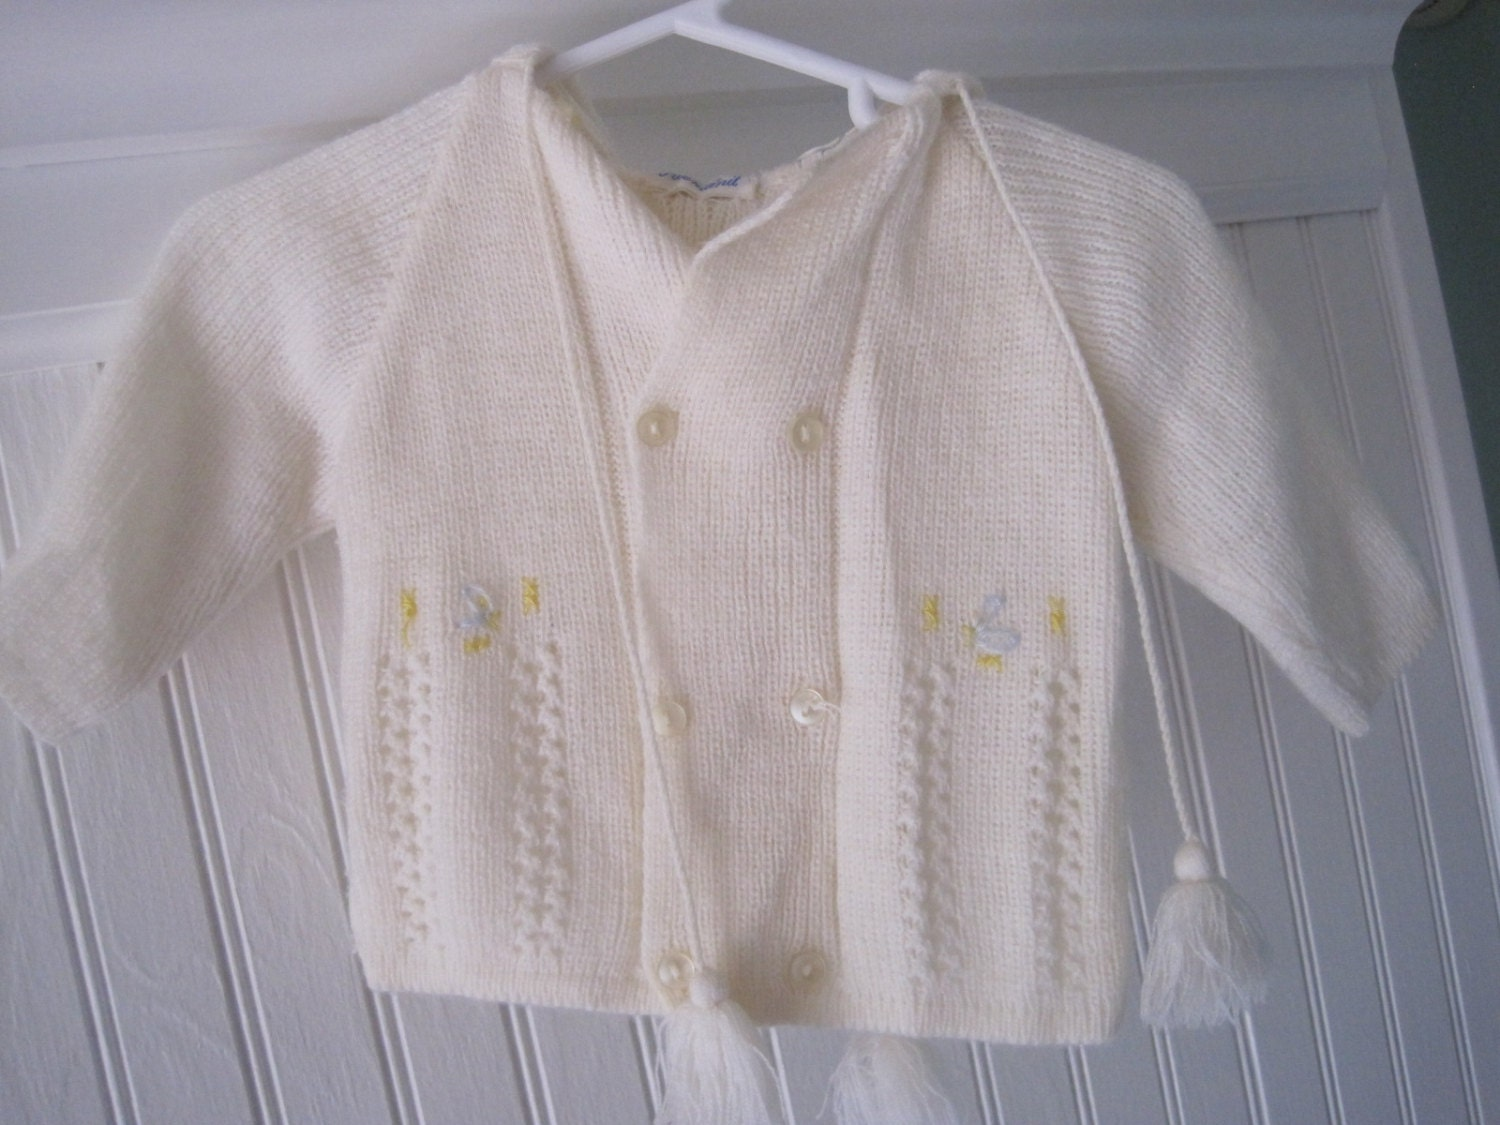 e7a57e5bc895 Vintage hooded baby sweater by Friemanit